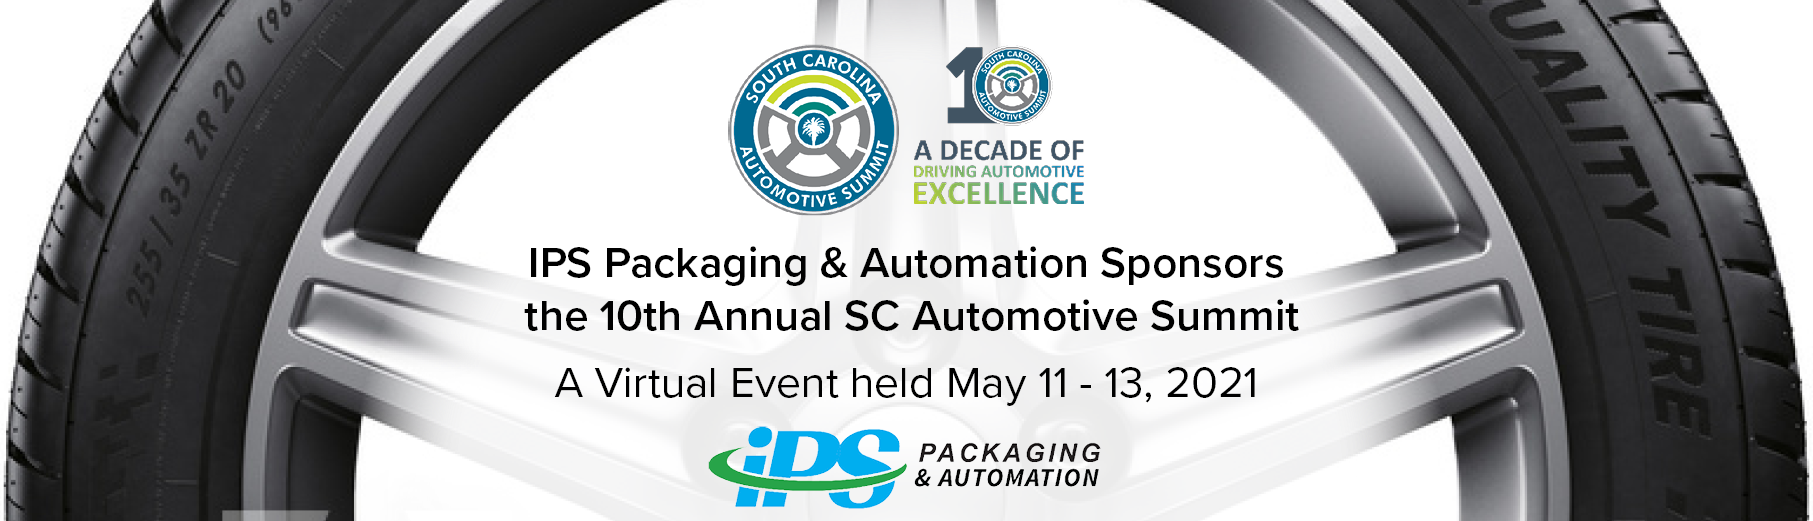 IPS Packaging & Automation Sponsors the Virtual SC Automotive Summit